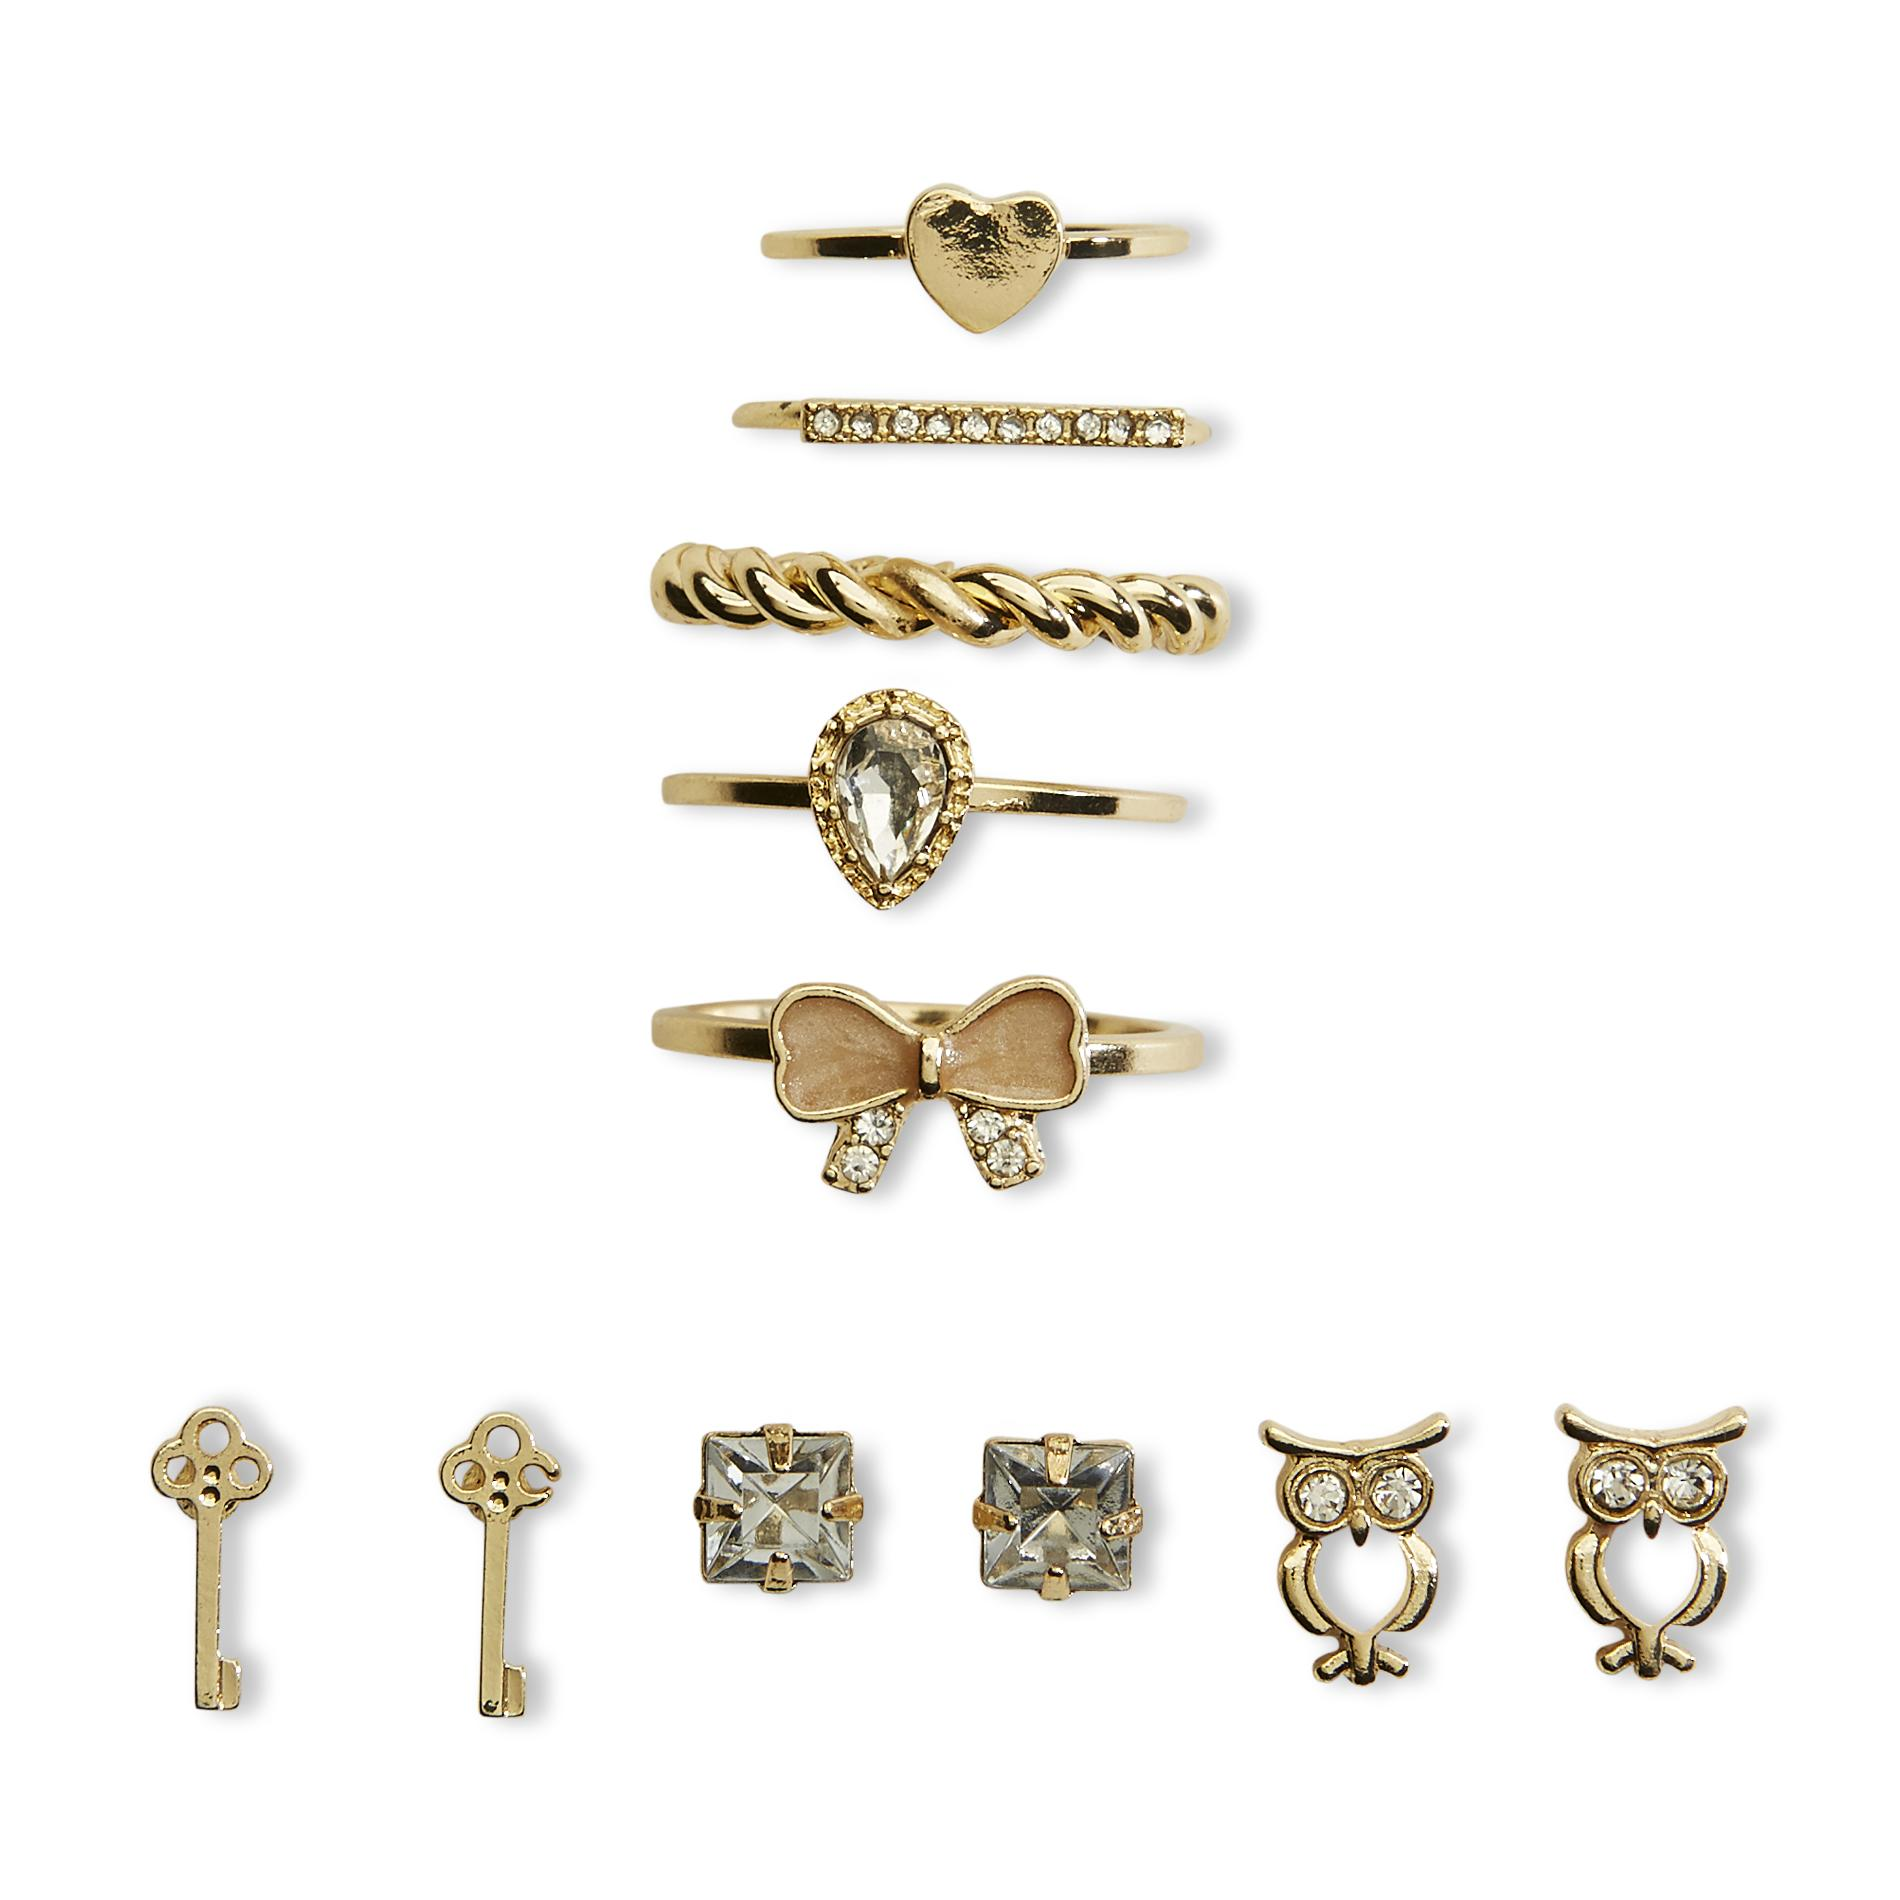 Joe Boxer Women's Goldtone 3-Pairs Stud Earrings & 5 Rings